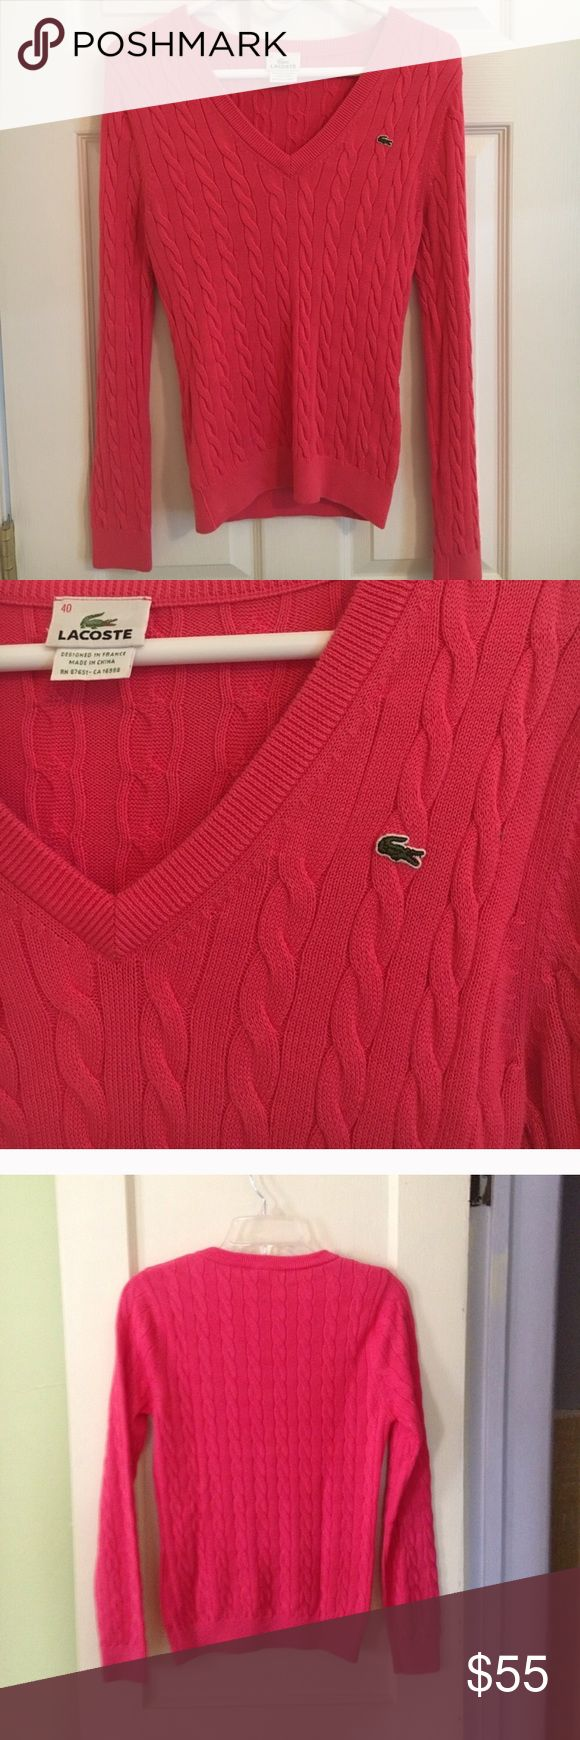 Lacoste pink cable knit v-neck sweater Good condition- fits like a medium/small Lacoste Sweaters V-Necks